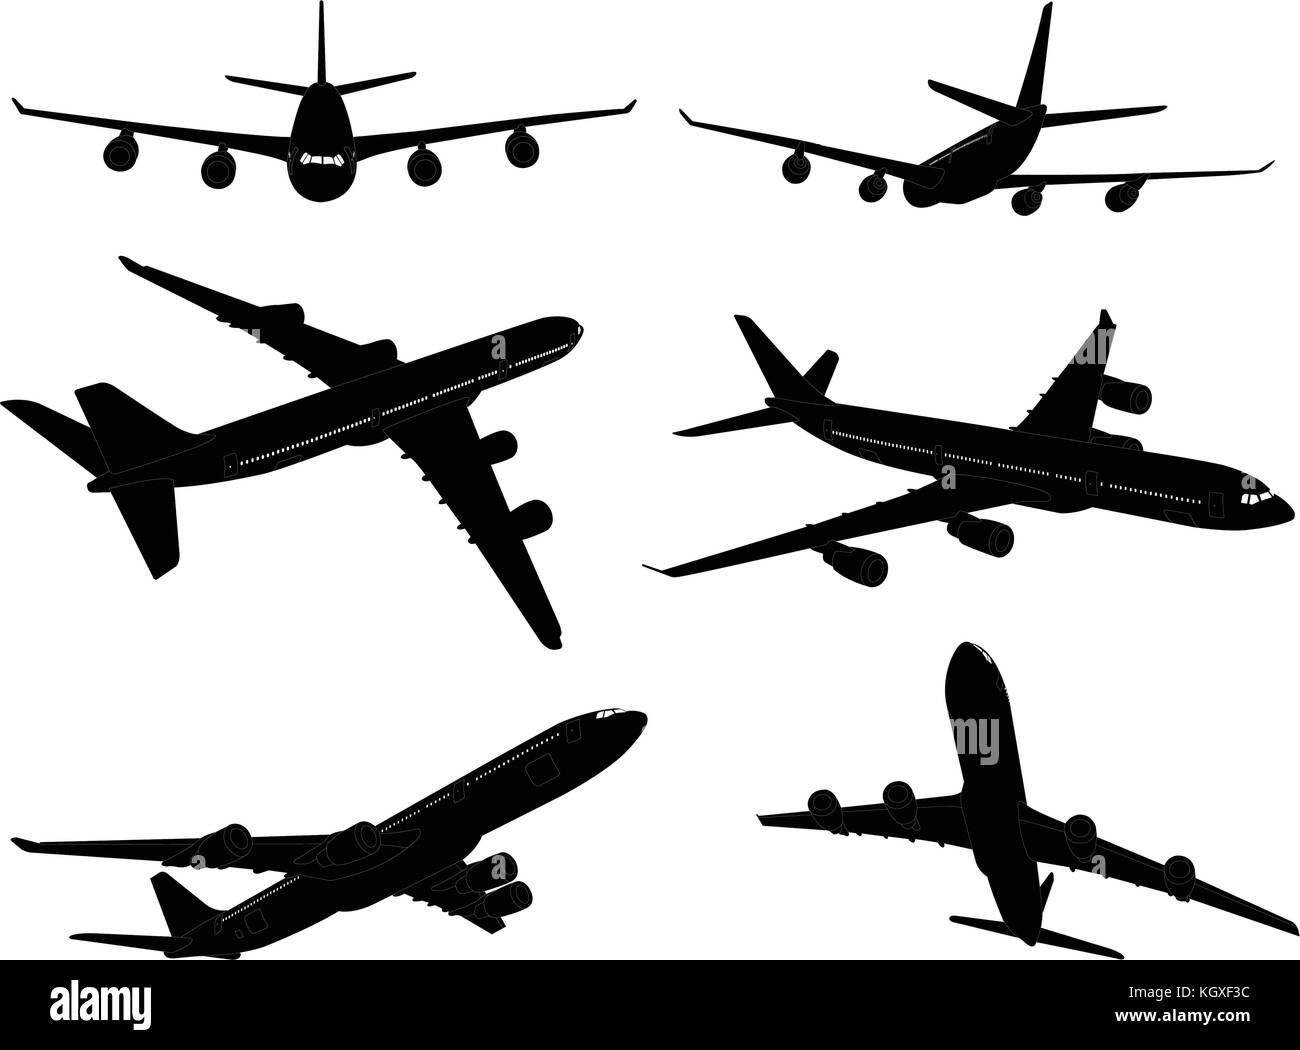 big commercial airplanes silhouettes - vector - Stock Image